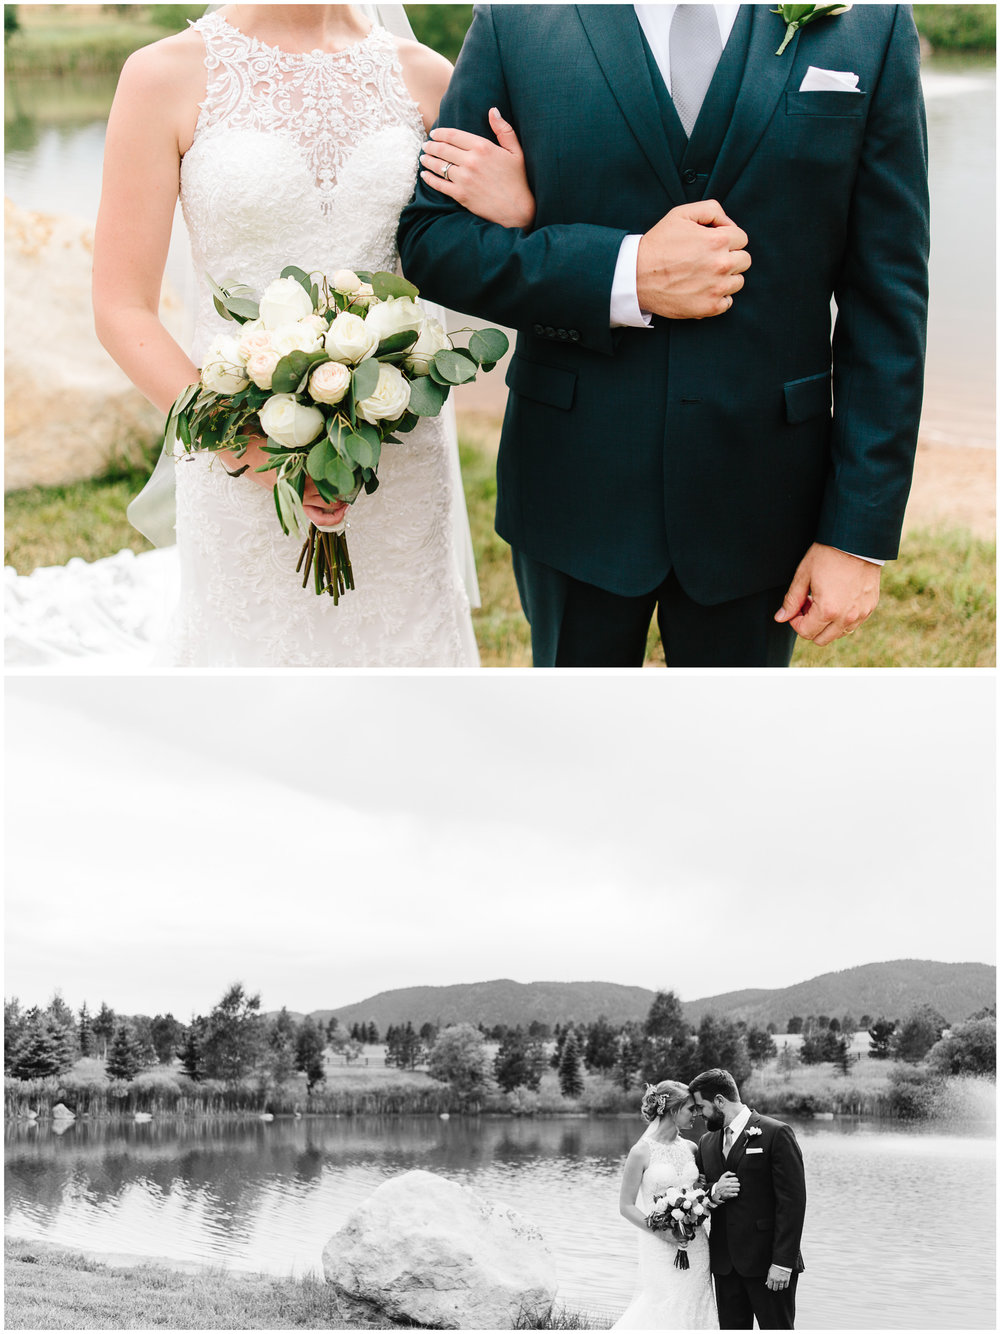 Spruce_Mountain_Ranch_Wedding_43.jpg